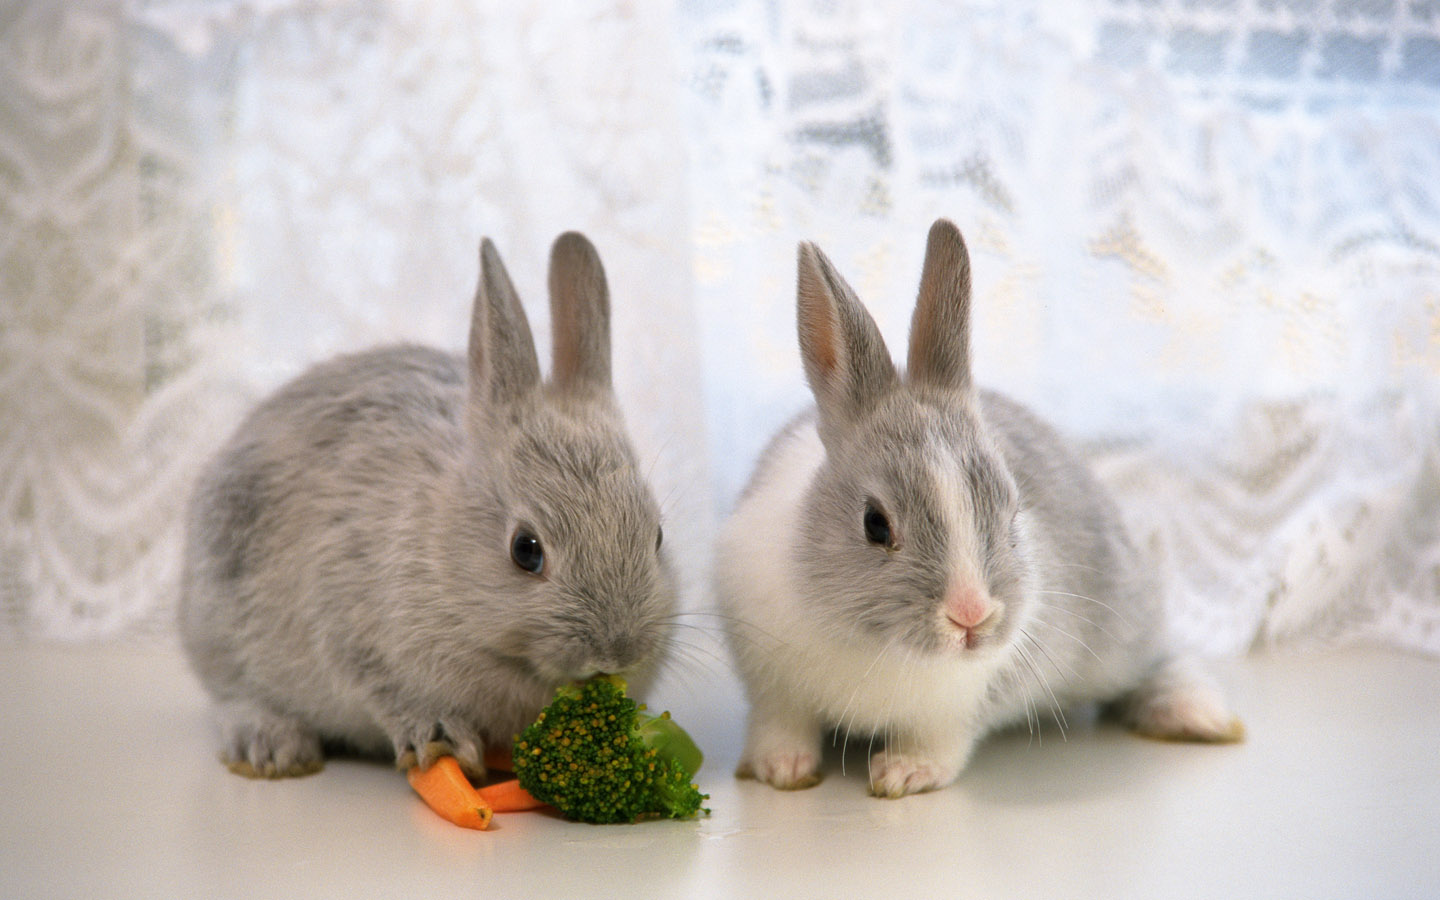 Download 1440x900 Two Cute Rabbits Wallpaper